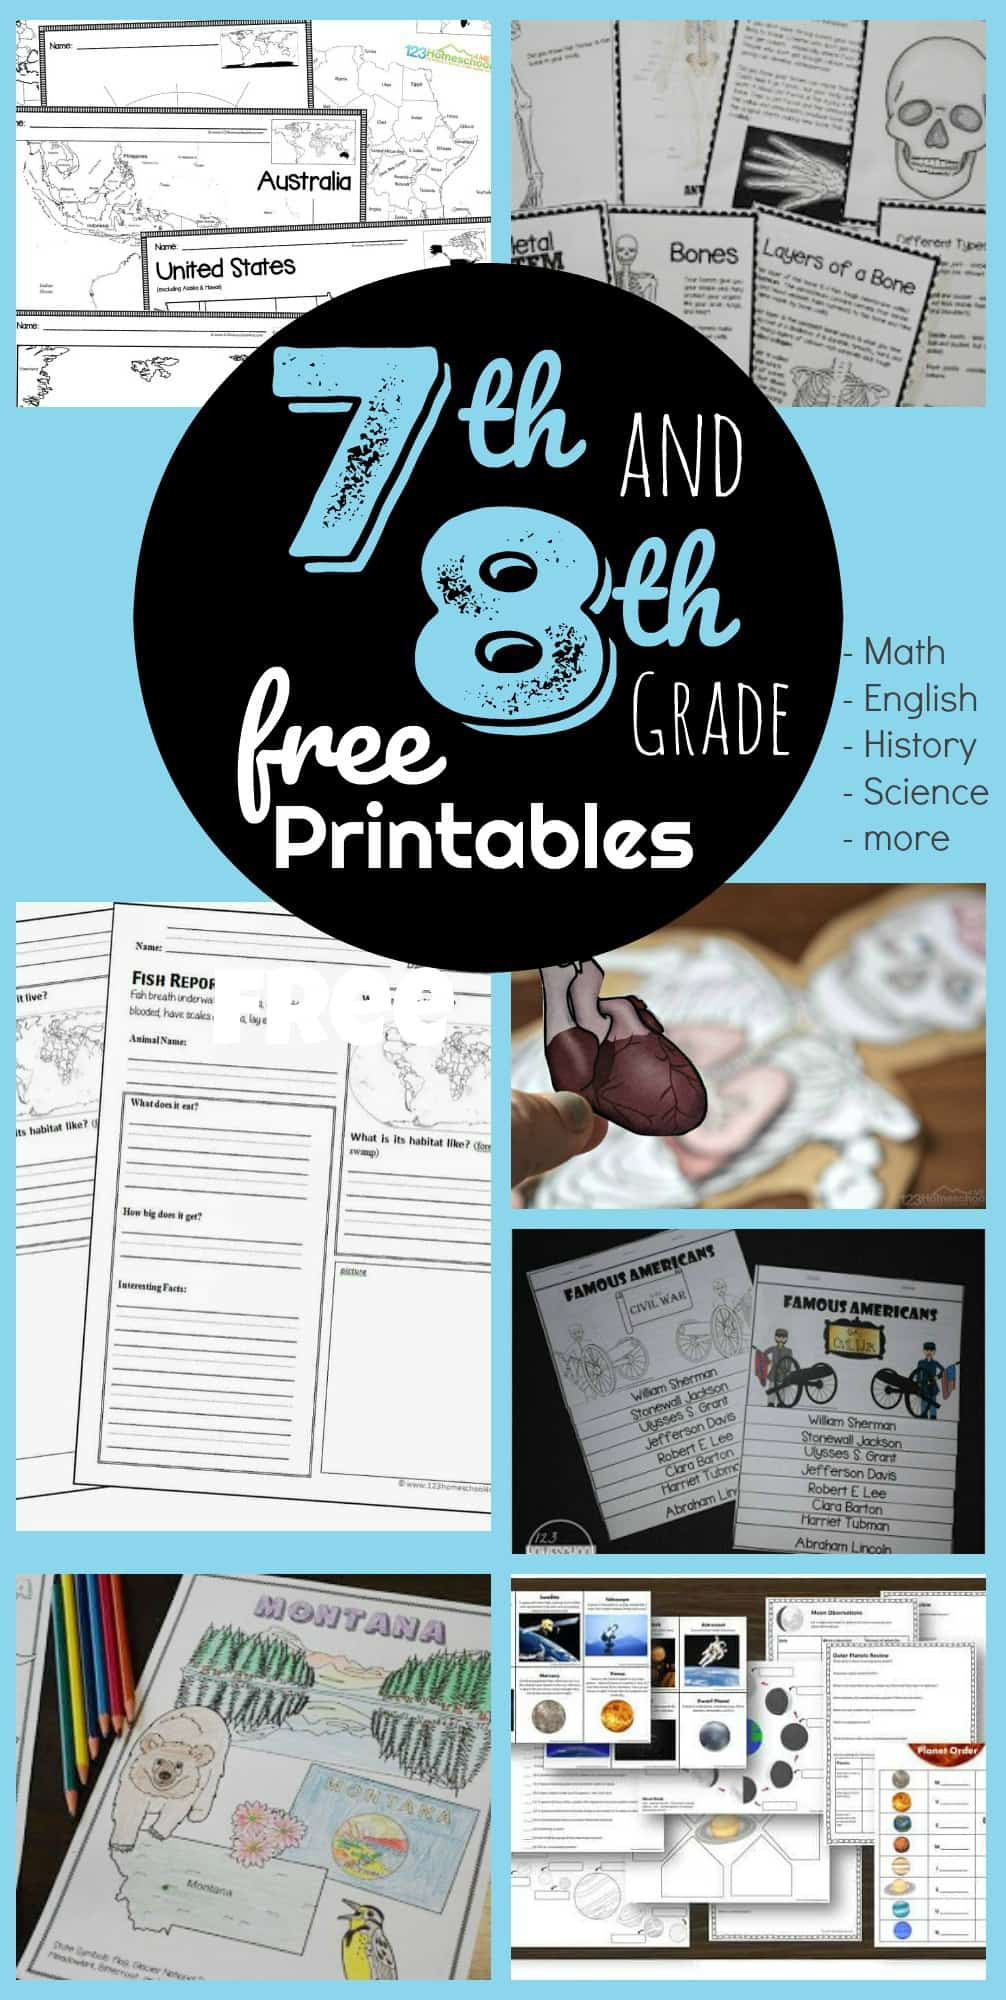 Free 8th Grade Science Worksheets Free 7th & 8th Grade Worksheets